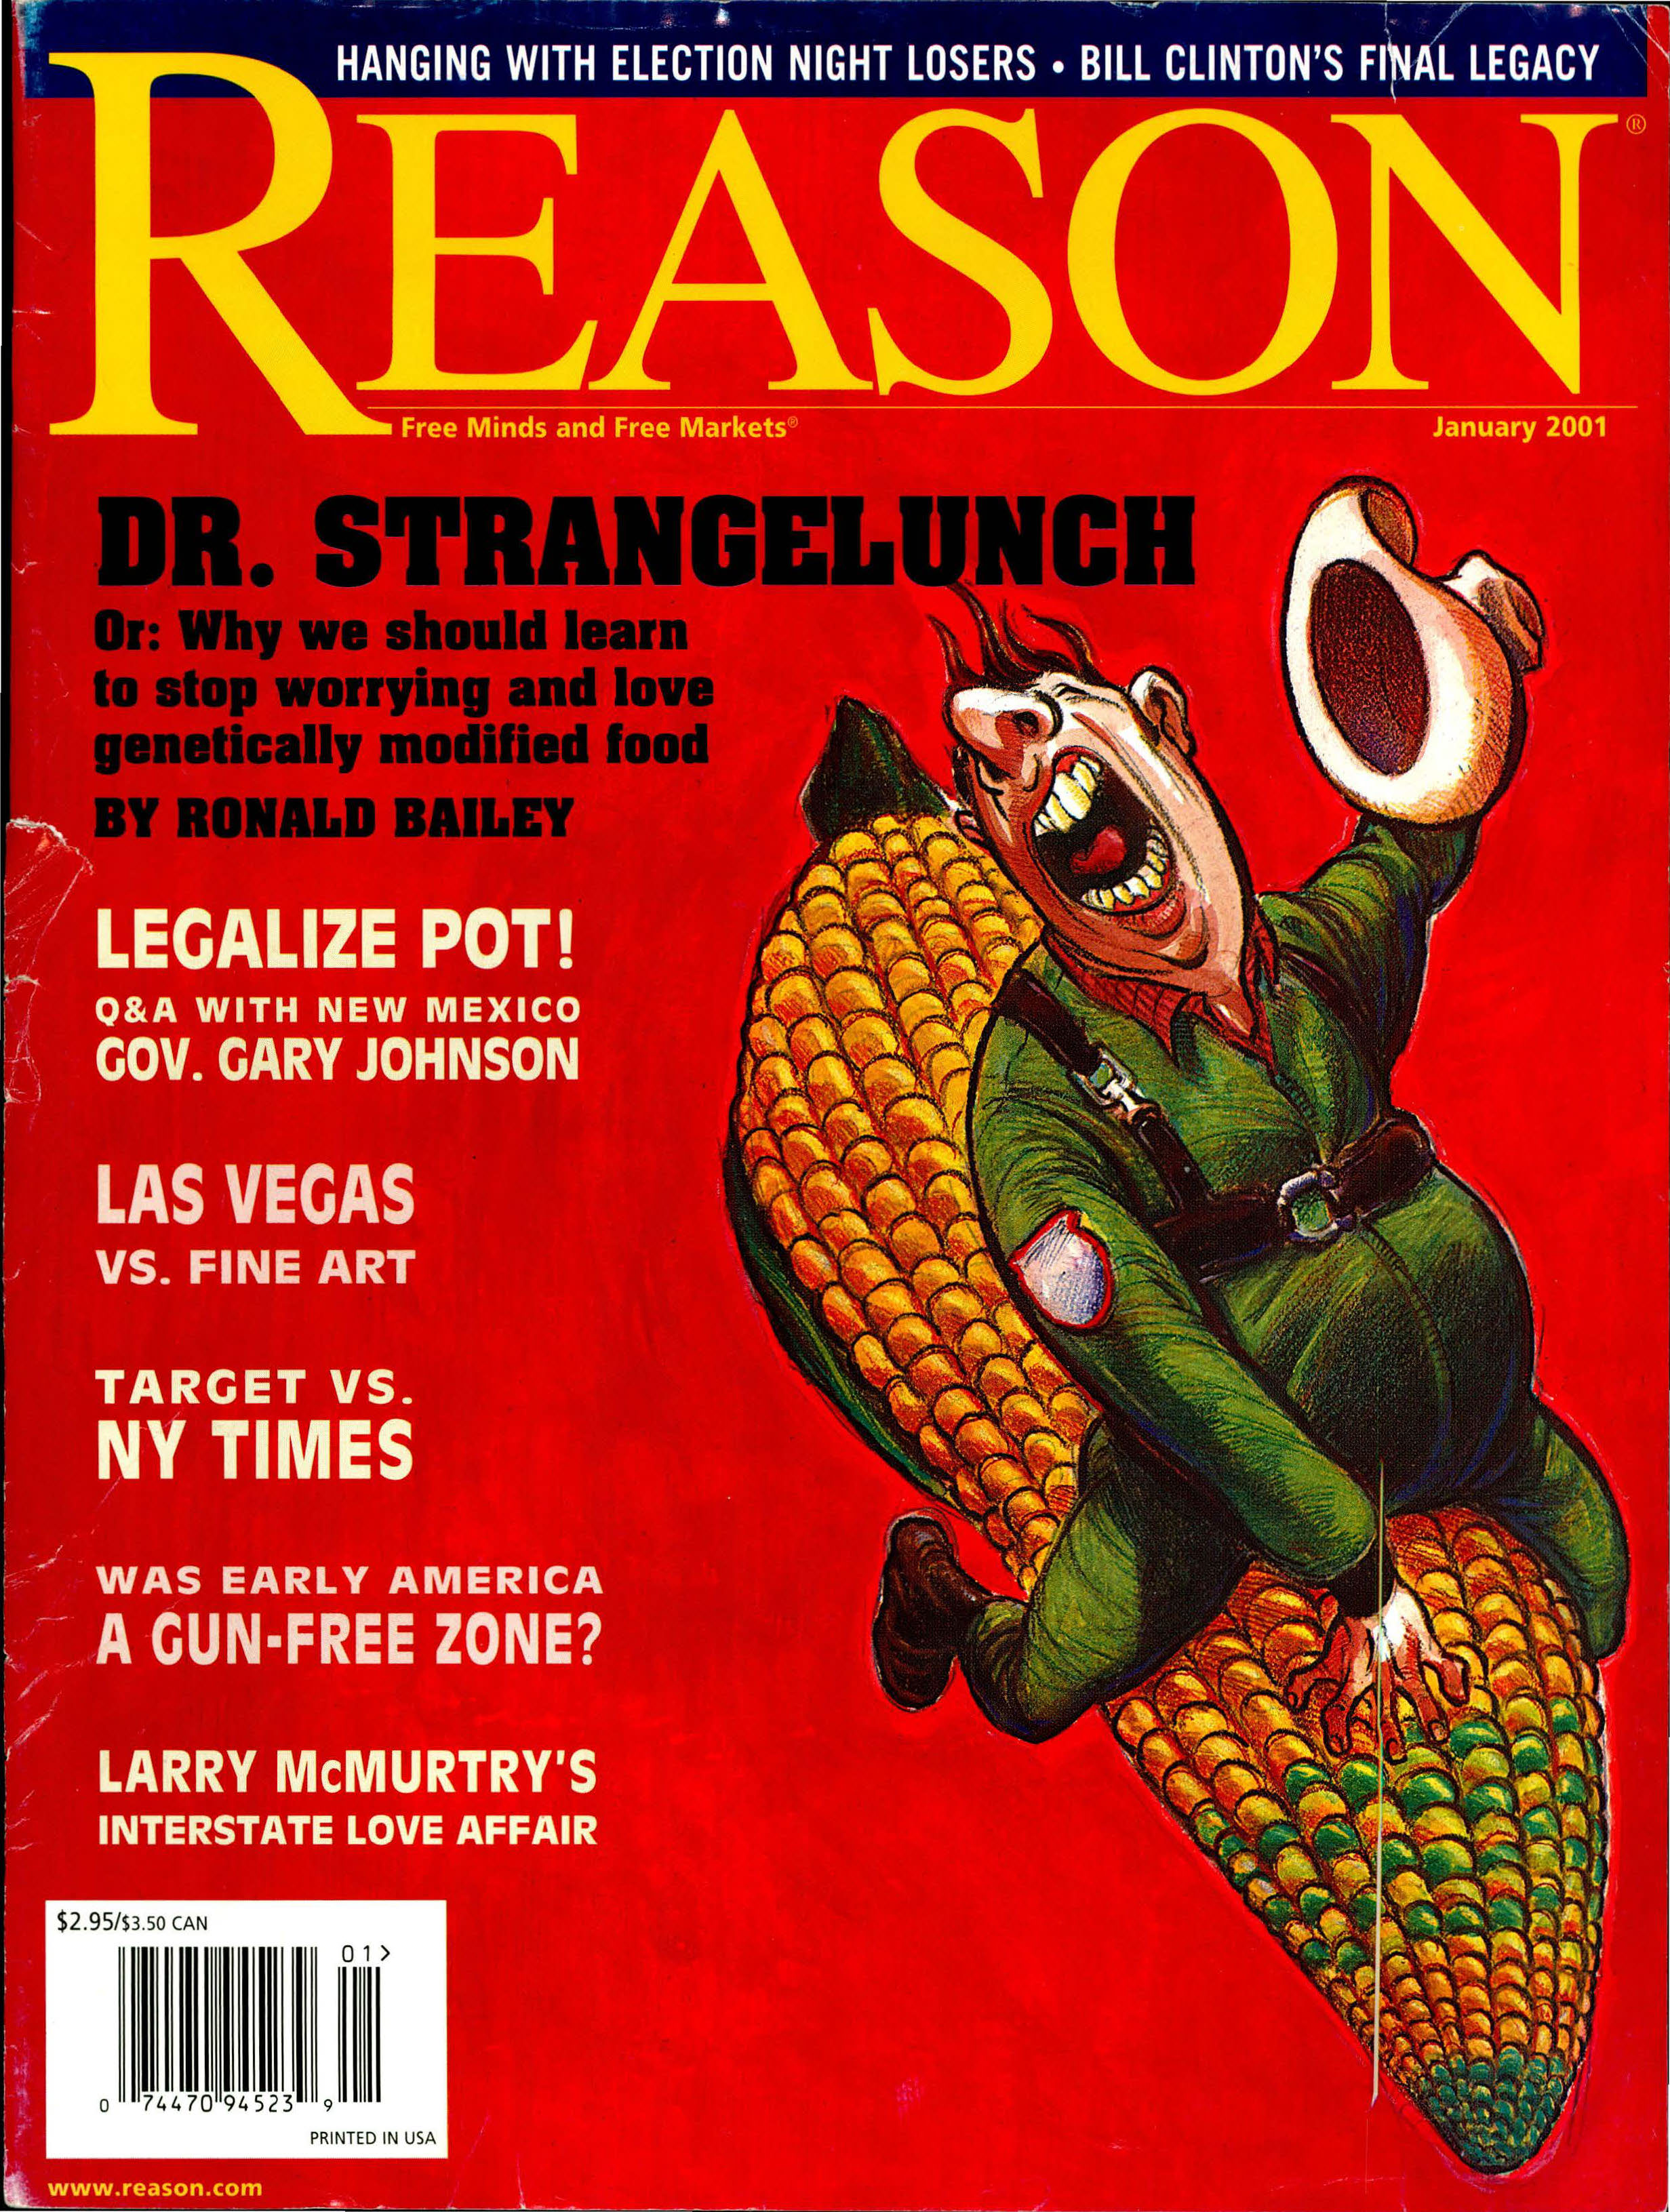 Reason Magazine, January 2001 cover image